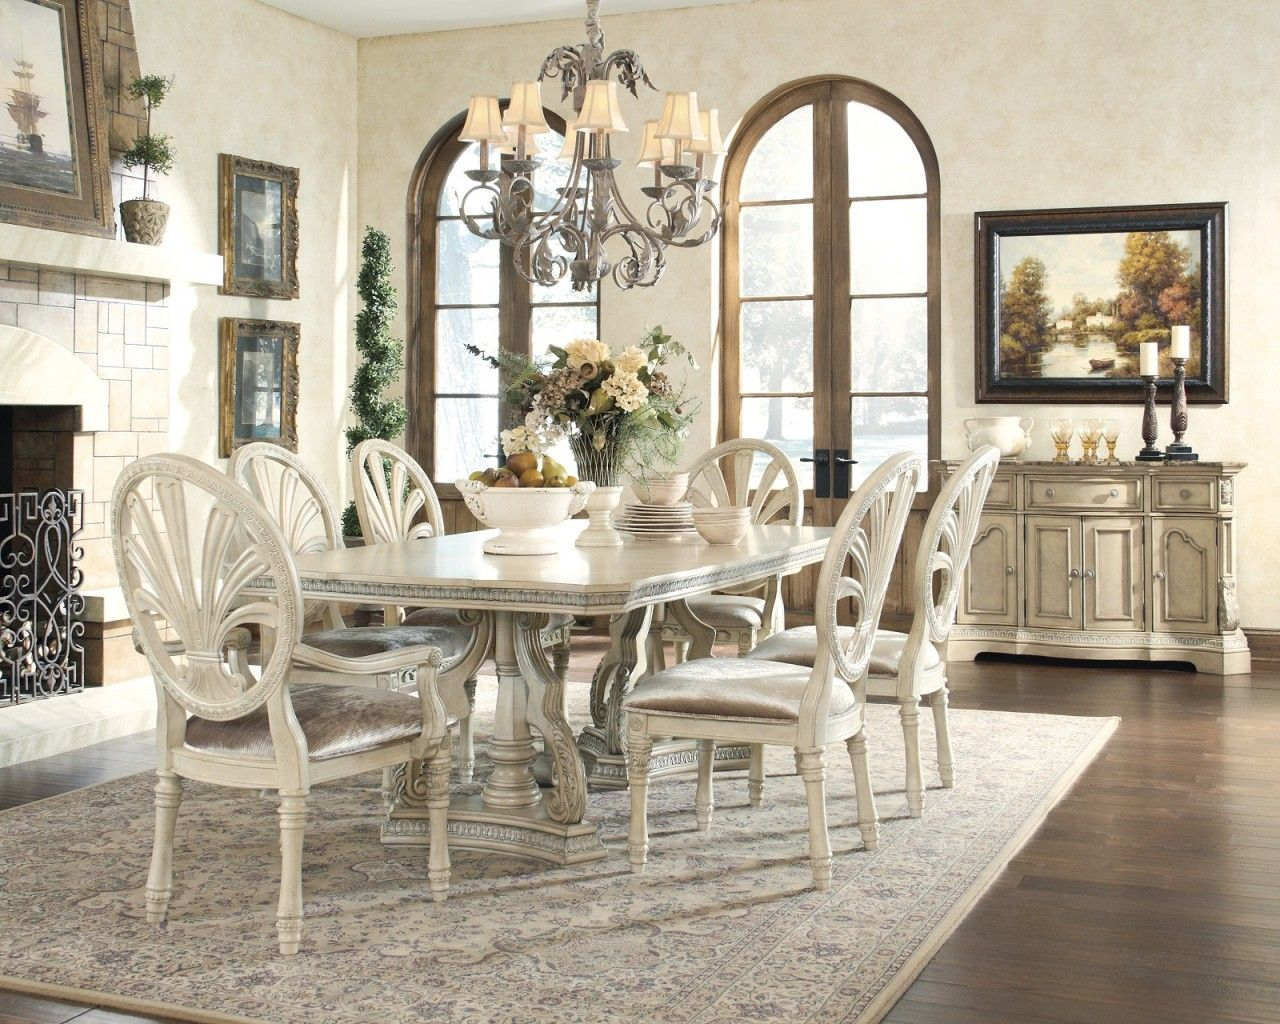 Antique White Glass Top Dining Table | Doces Abobrinhas | Pinterest ...